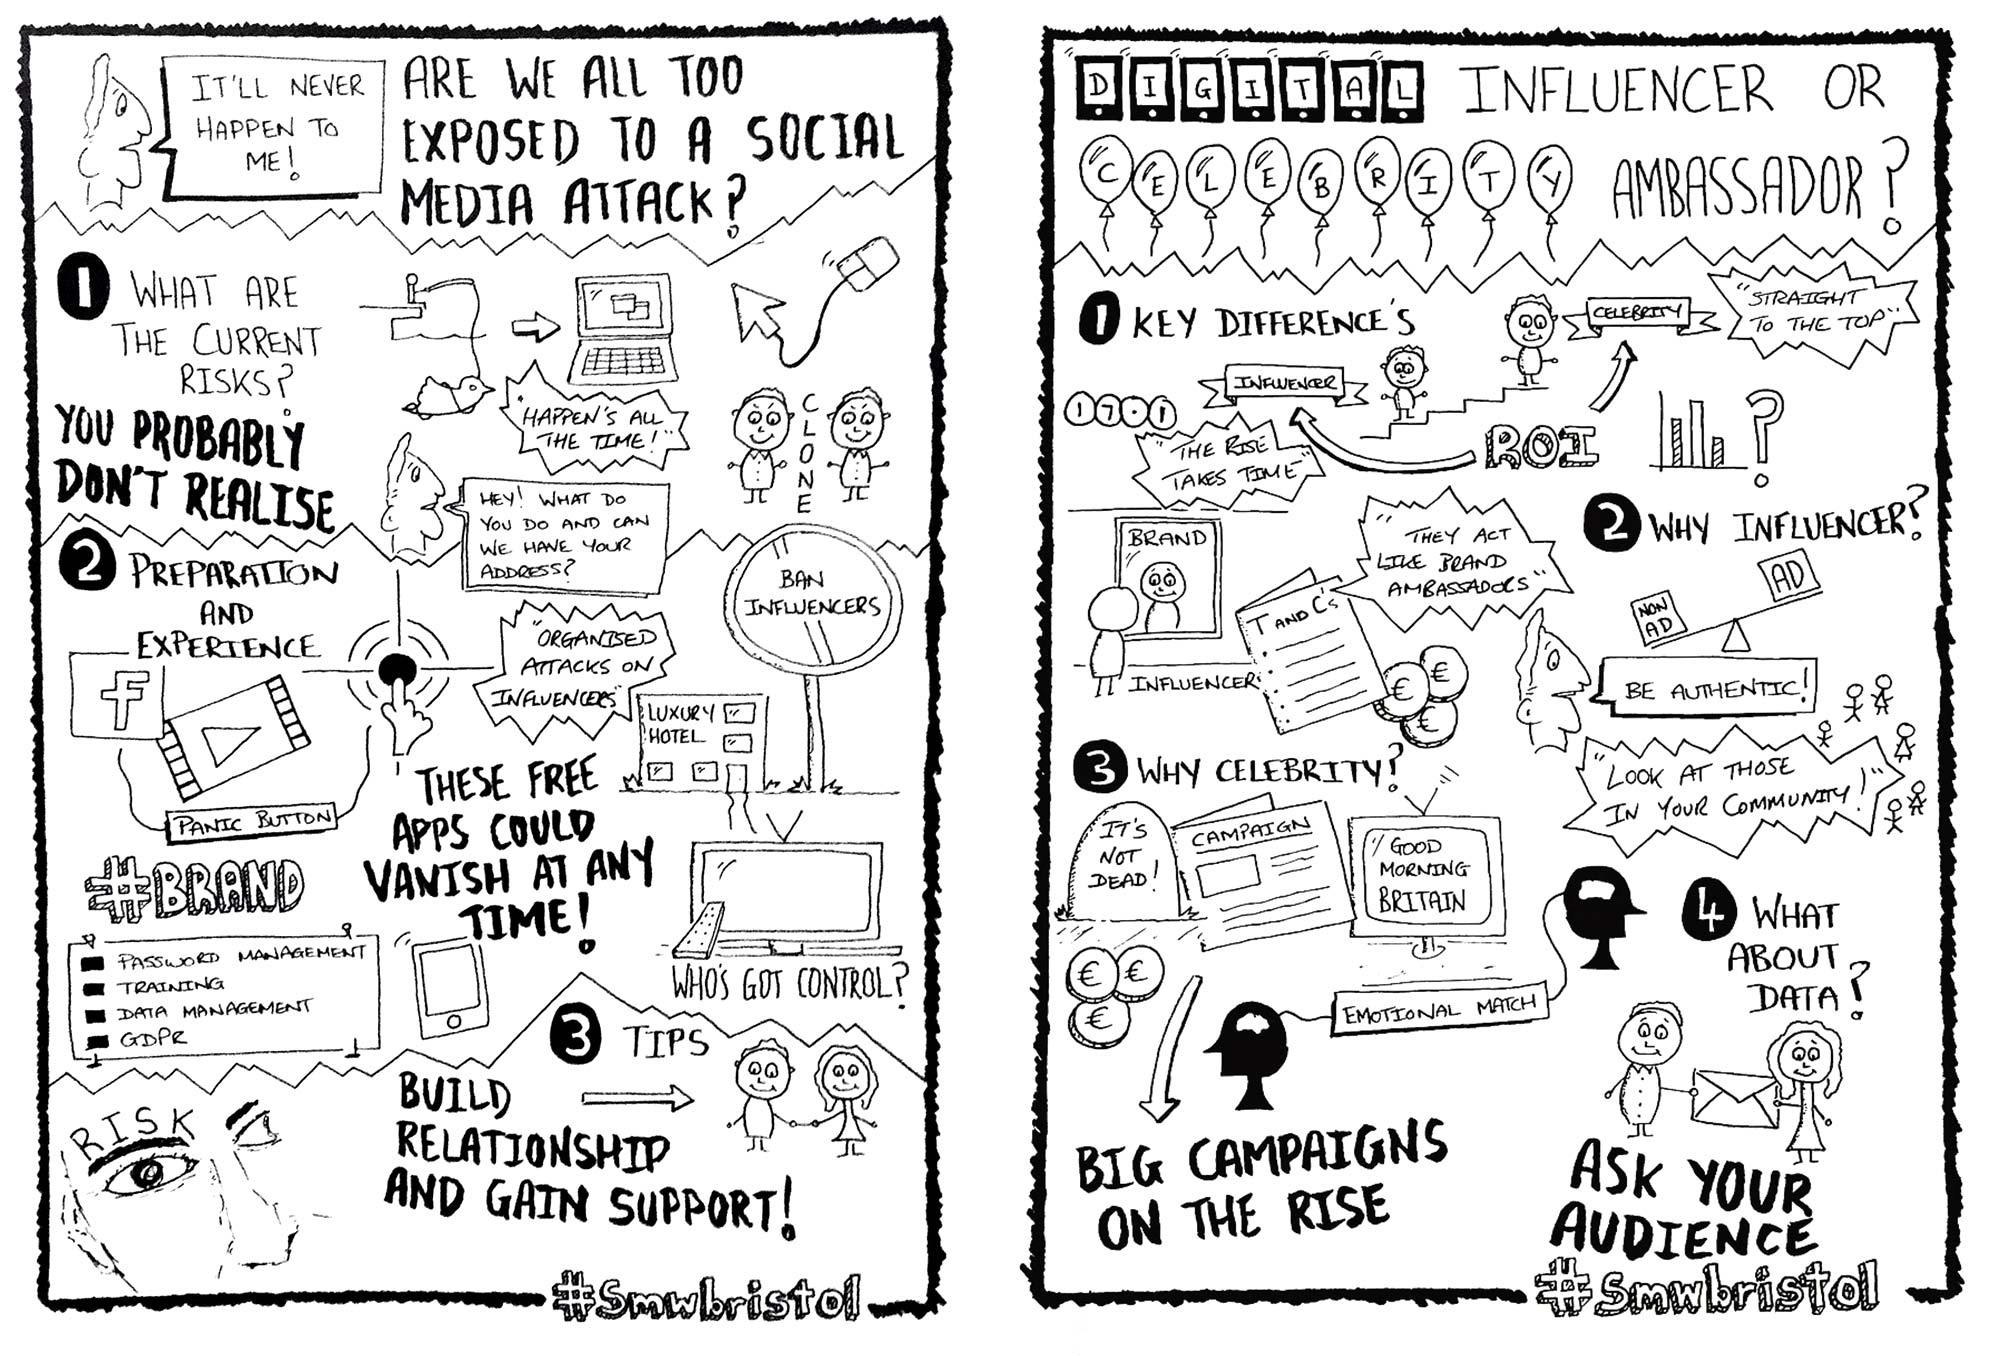 Social Media Week Bristol smw #SMW Branding Design Event Conference Illustration Sketchnote Sketchnoting LeoDo Liam Williams